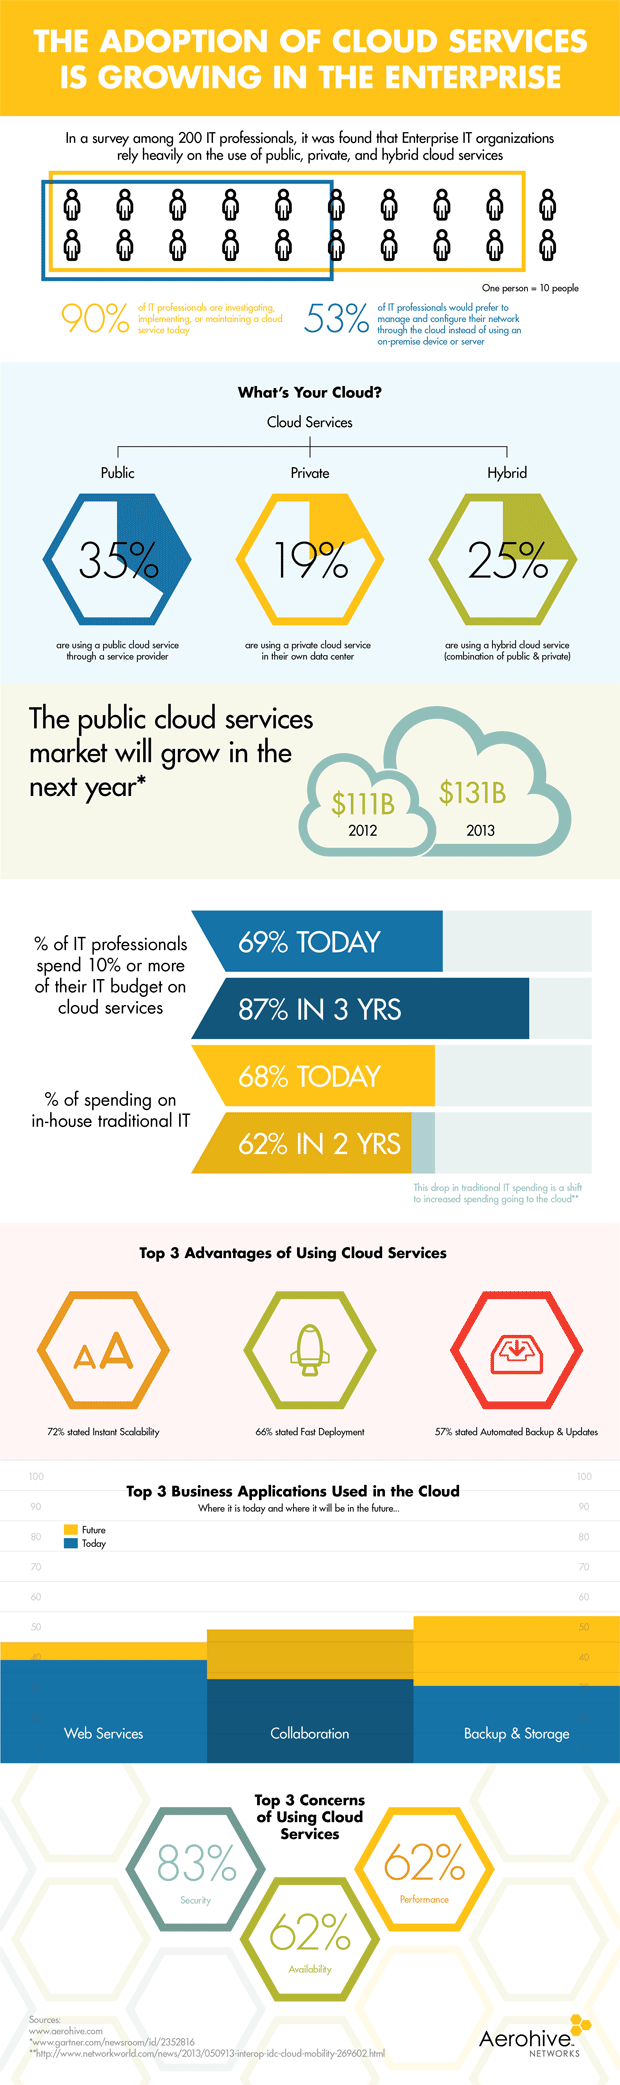 Growing Adoption of Cloud Computing in the Enterprise